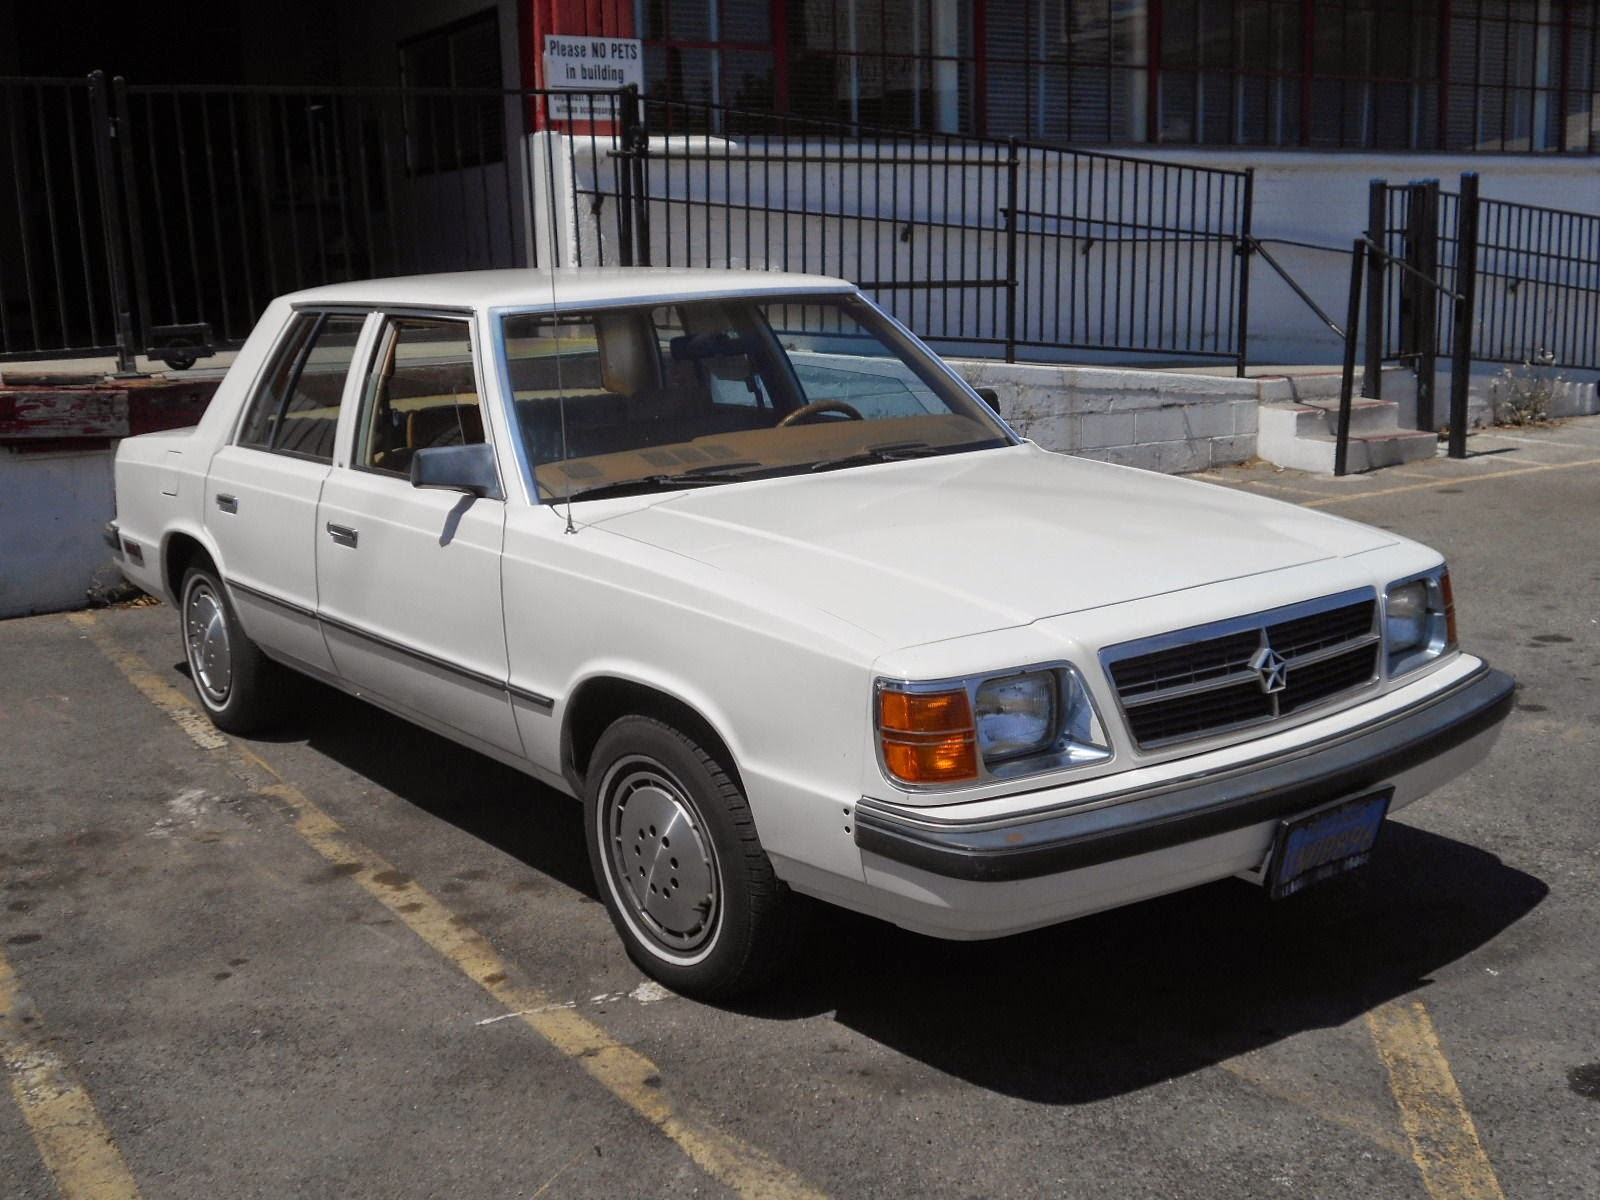 Daily Turismo: K is for Krap: 1985 Dodge Aries K-Car